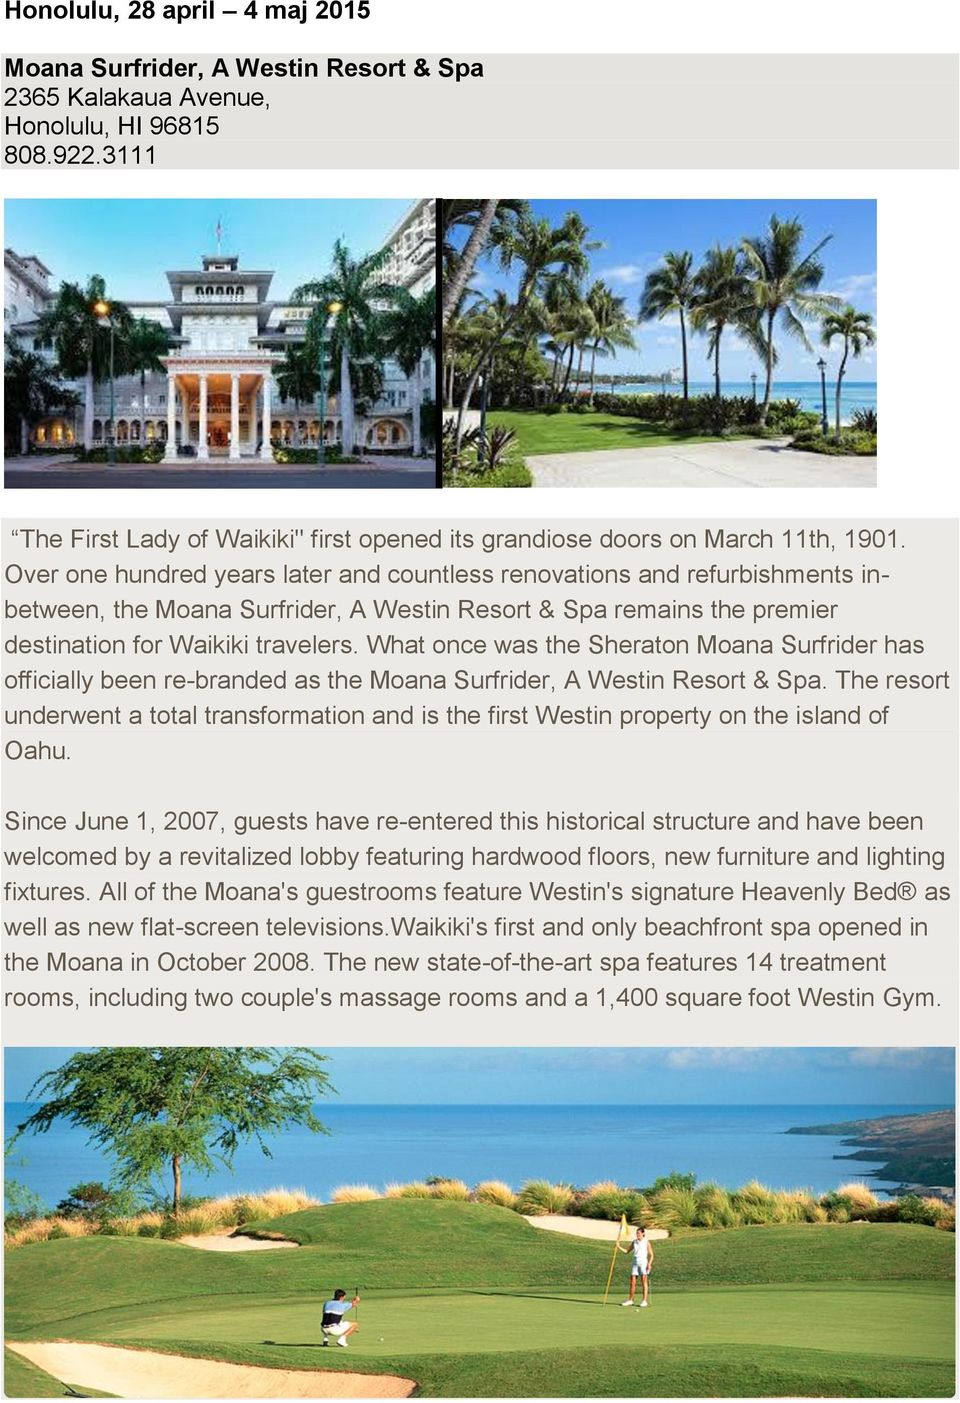 Over one hundred years later and countless renovations and refurbishments inbetween, the Moana Surfrider, A Westin Resort & Spa remains the premier destination for Waikiki travelers.